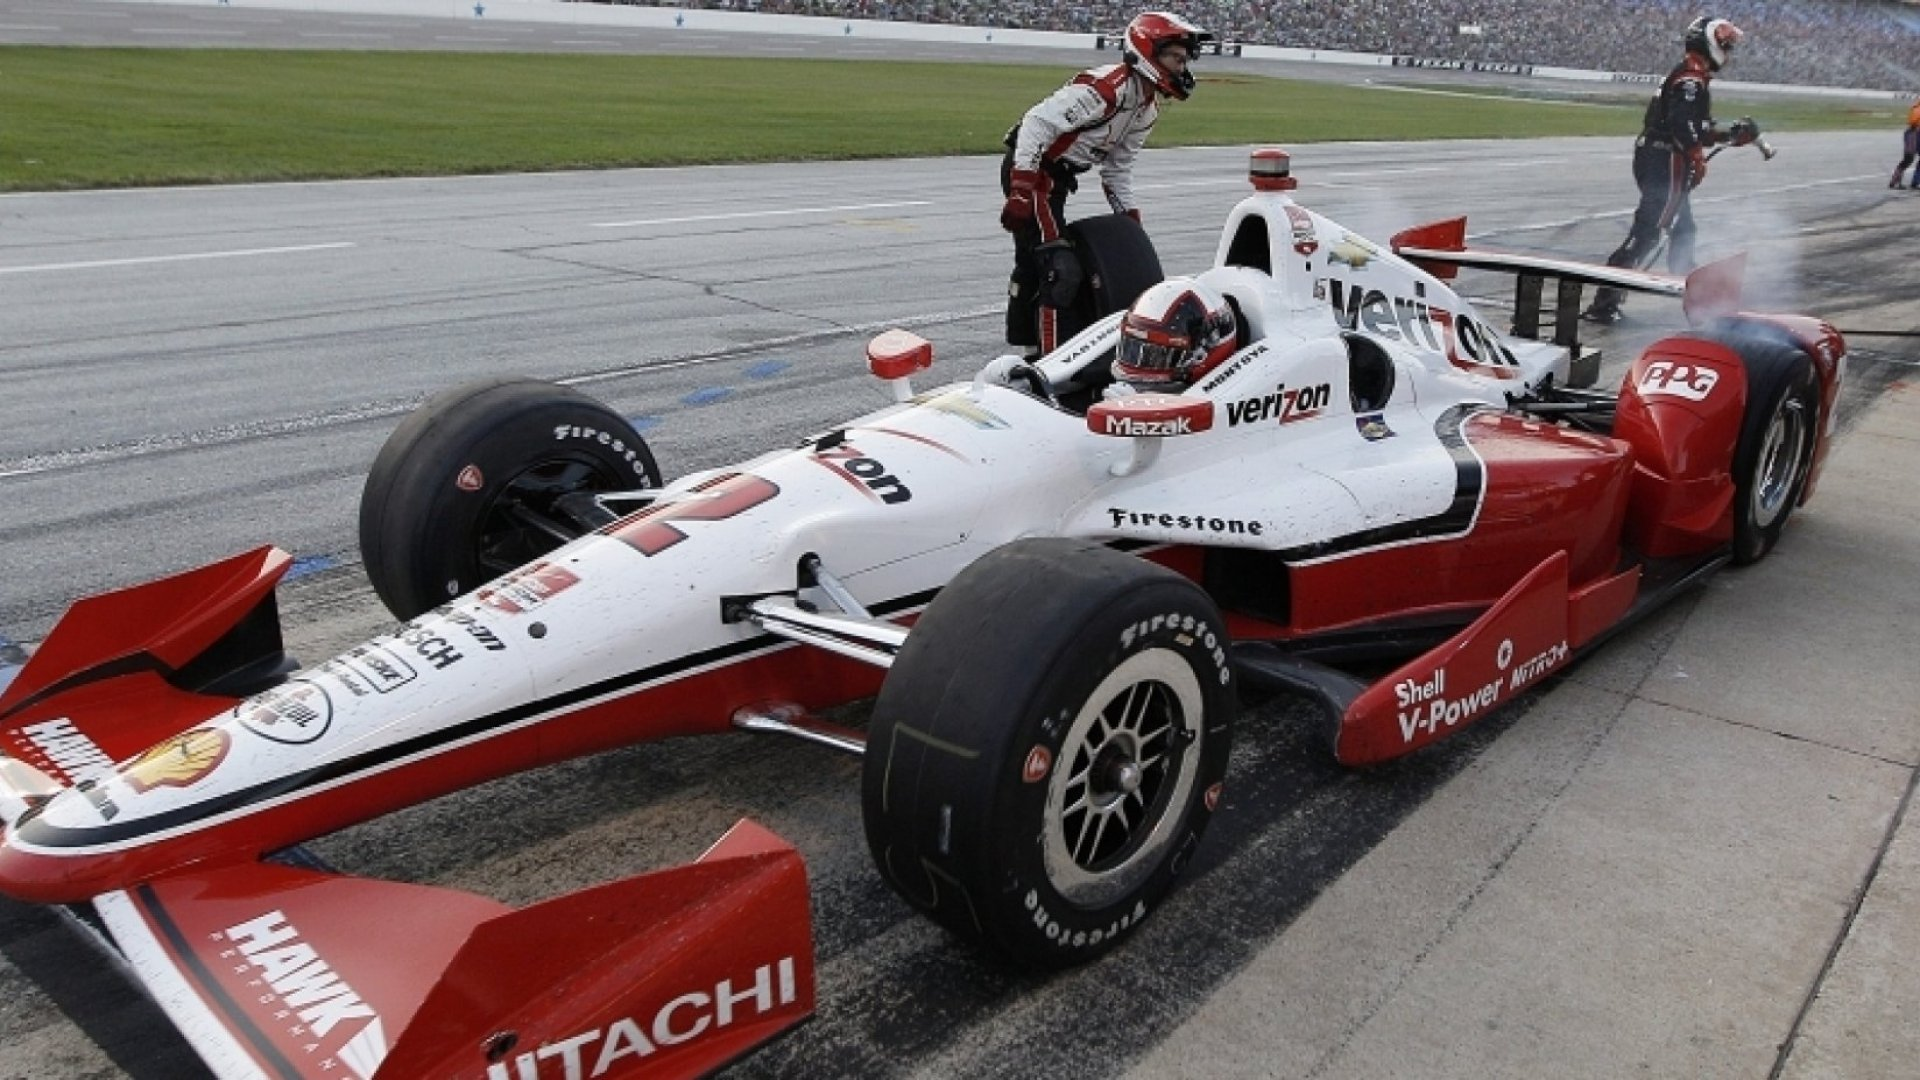 One Race, 5000 Tires: What You Can Learn From the Indy 500 About Research and Development